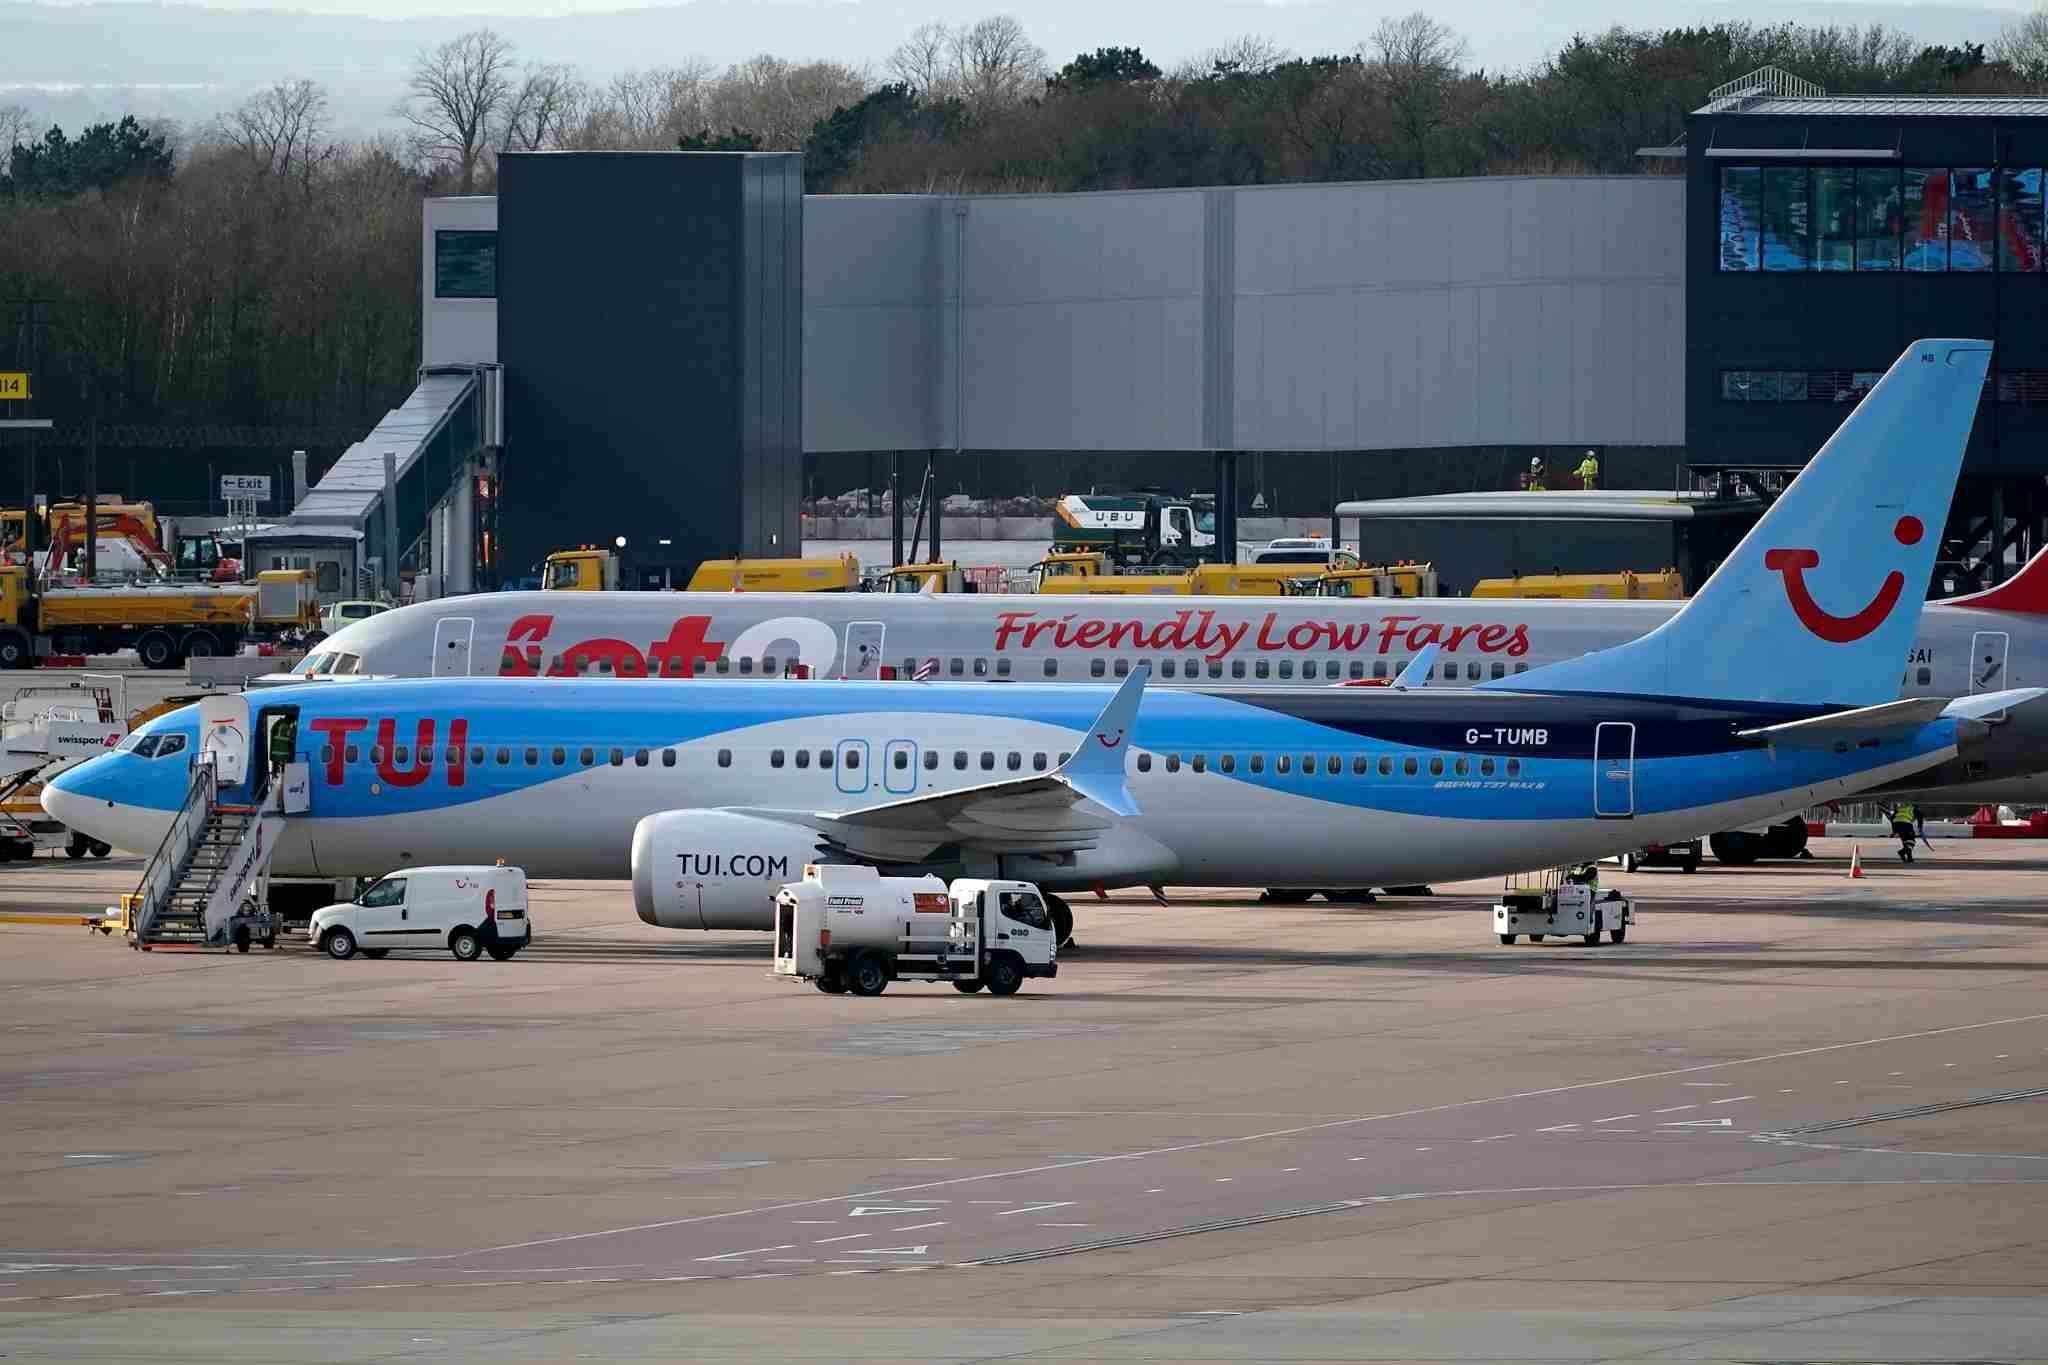 MANCHESTER, ENGLAND - MARCH 12: A TUI Boeing 737 Max-8 aircraft is parked at Manchester Airport on March 12, 2019 in Manchester, England. The Civil Aviation Authority has grounded Boeing 737 Max-8 aircraft and forbidden them from flying through UK airspace following the Ethiopian Airlines crash this week. (Photo by Christopher Furlong/Getty Images)